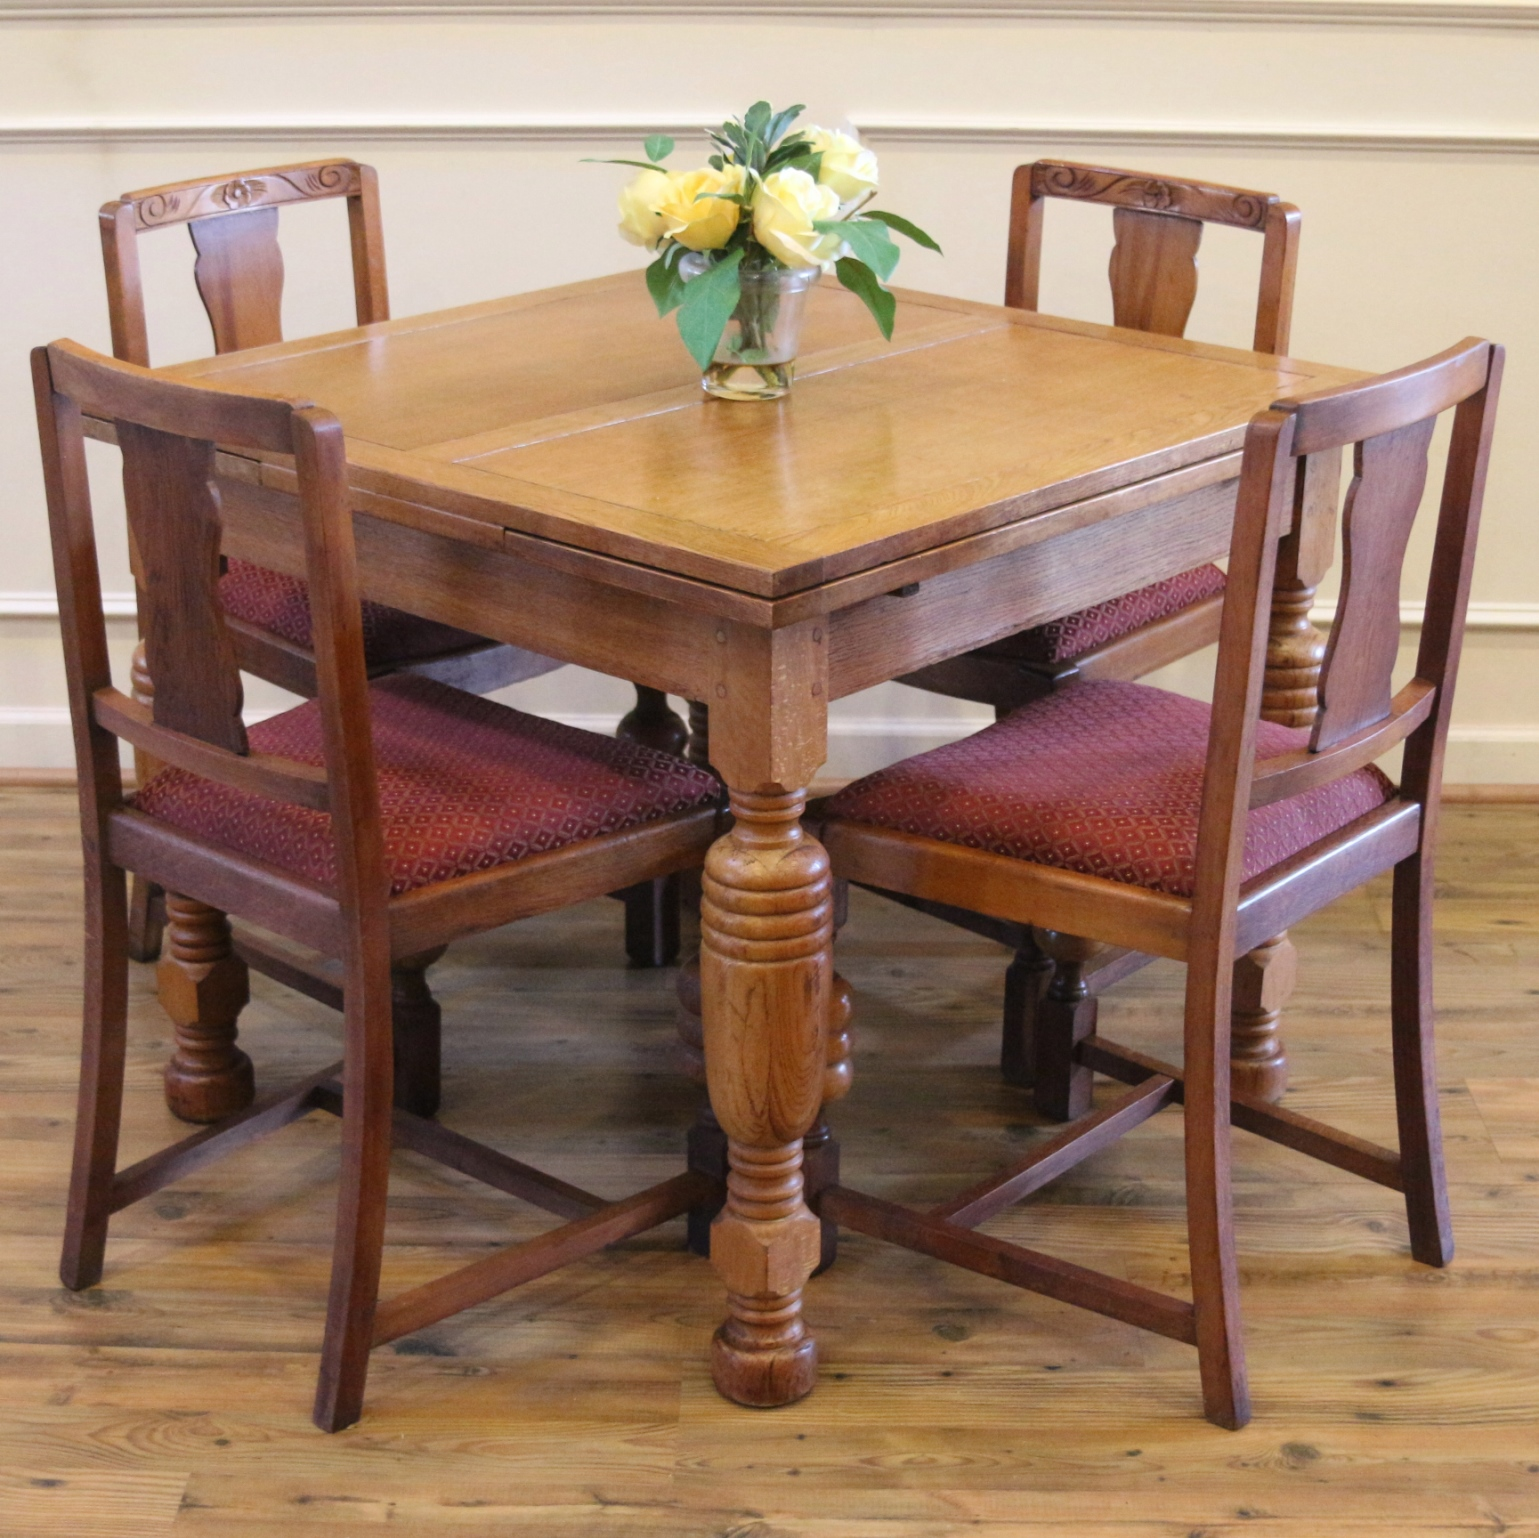 Breakfast Table Chairs Antique English Oak Pub Table And 4 Chairs Dining Set For